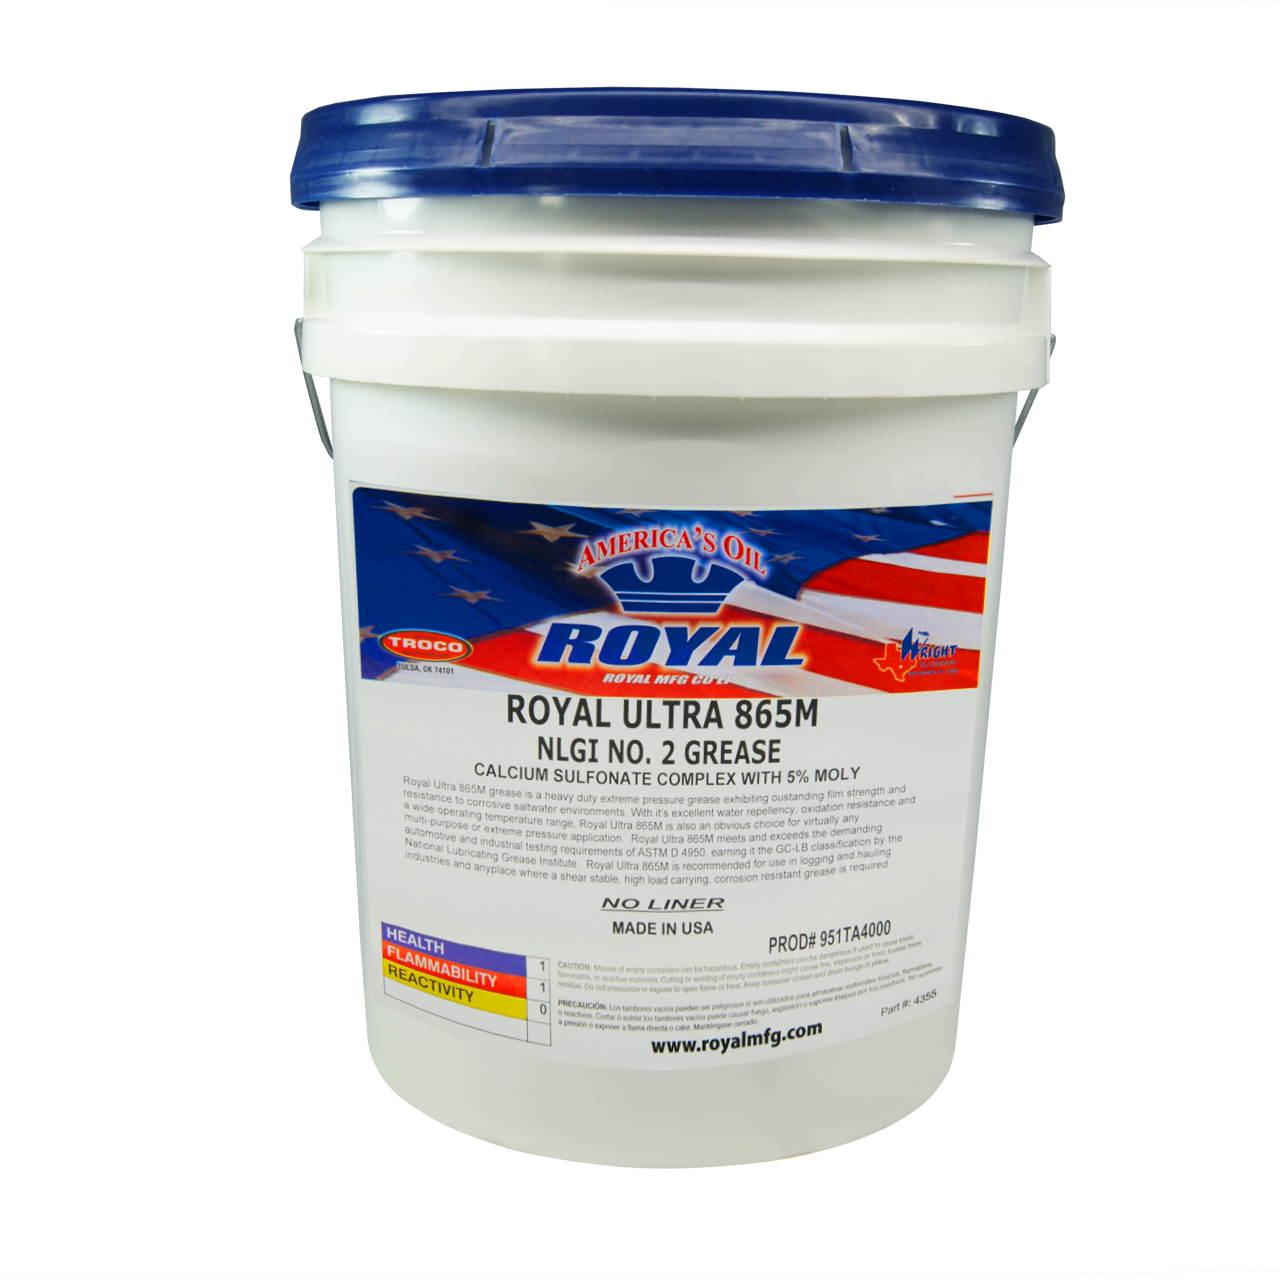 Royal Ultra 865M Grease - Midwest Lubricants LLC